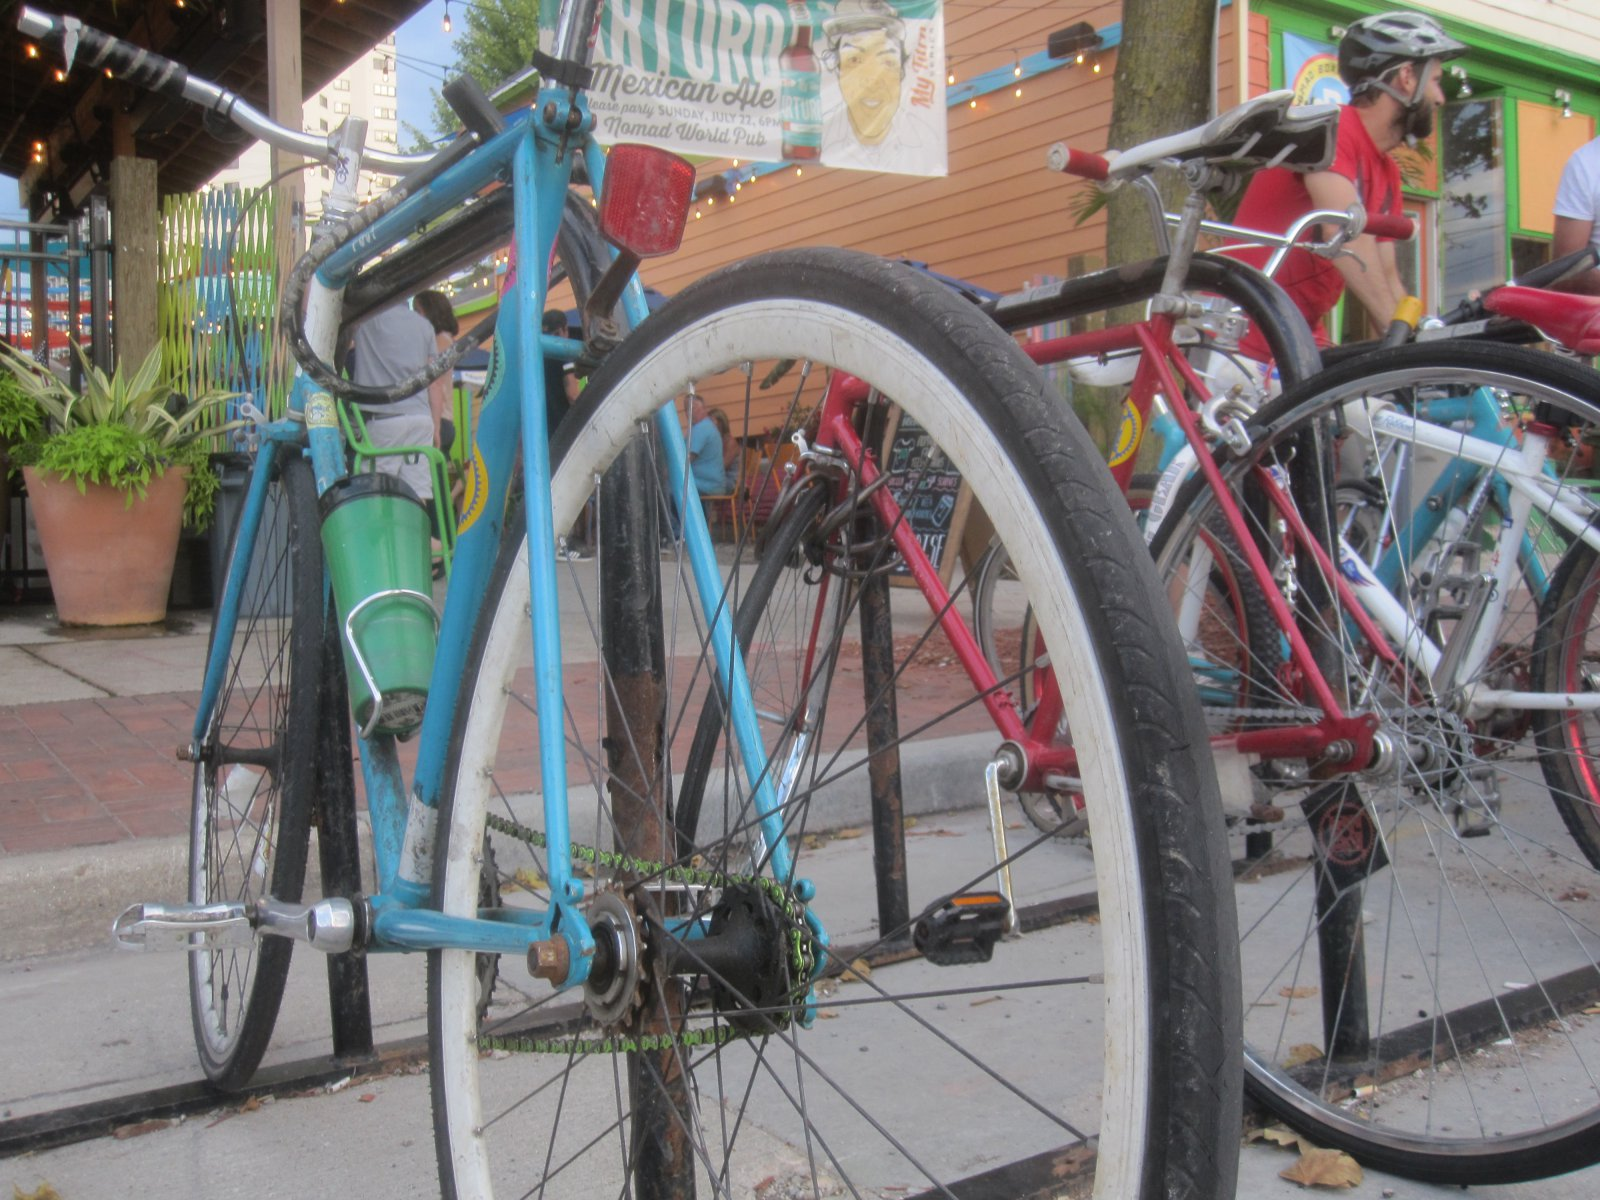 Bike rack in front of the patio